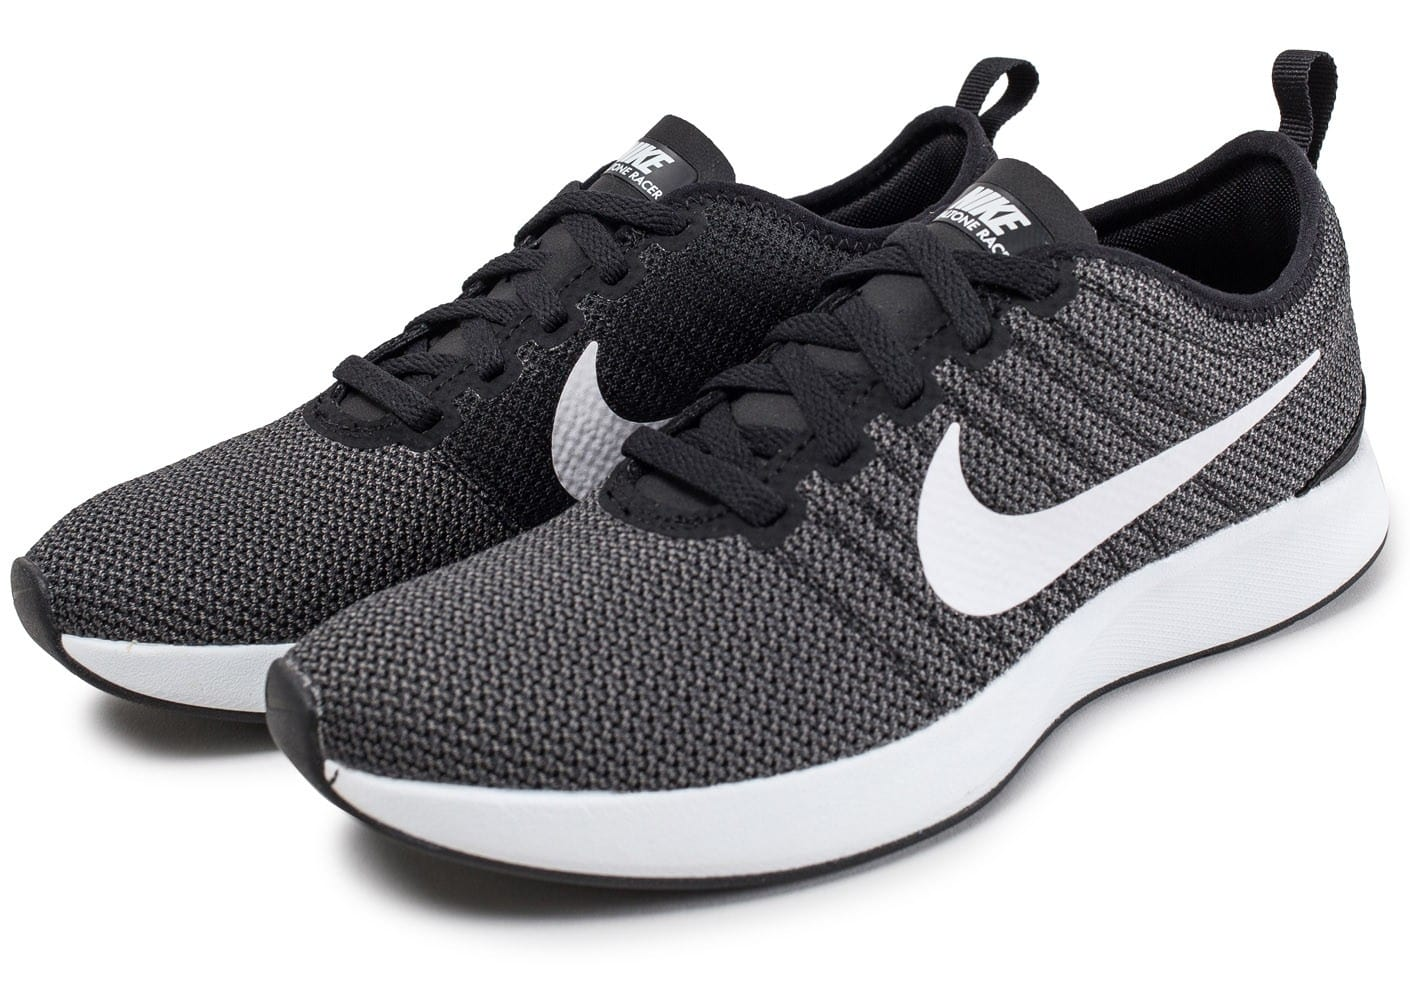 nike dualtone racer f noire et blanche chaussures black friday chausport. Black Bedroom Furniture Sets. Home Design Ideas